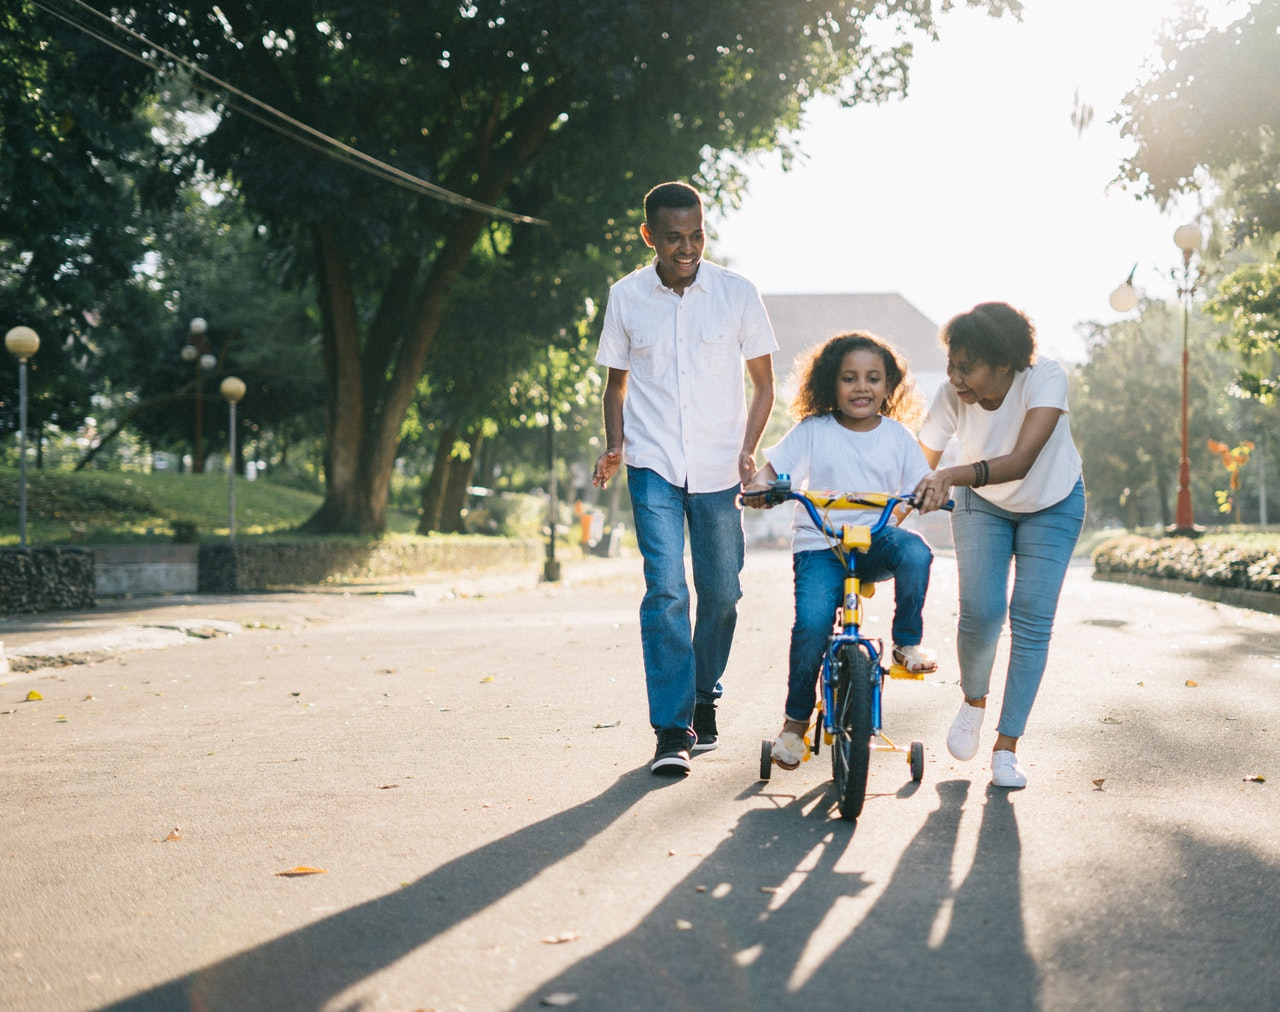 parents teaching child how to ride a bike